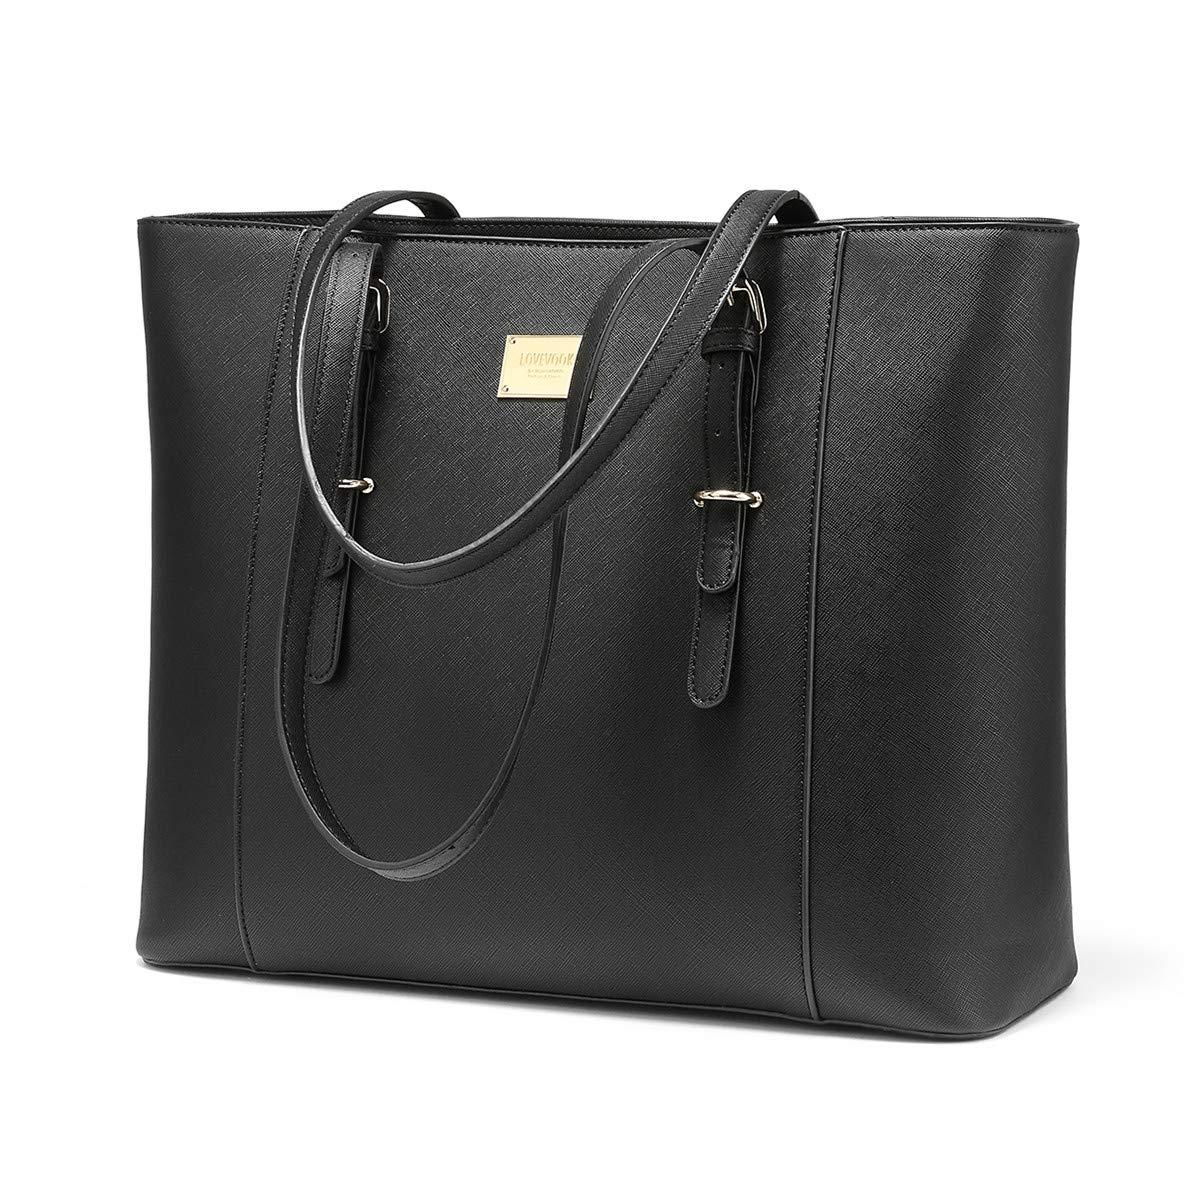 e279b47c49e7 Laptop Bag for Women Large Office Handbags Briefcase Fits Up to 15.6 inch  (Updated Version)-Black